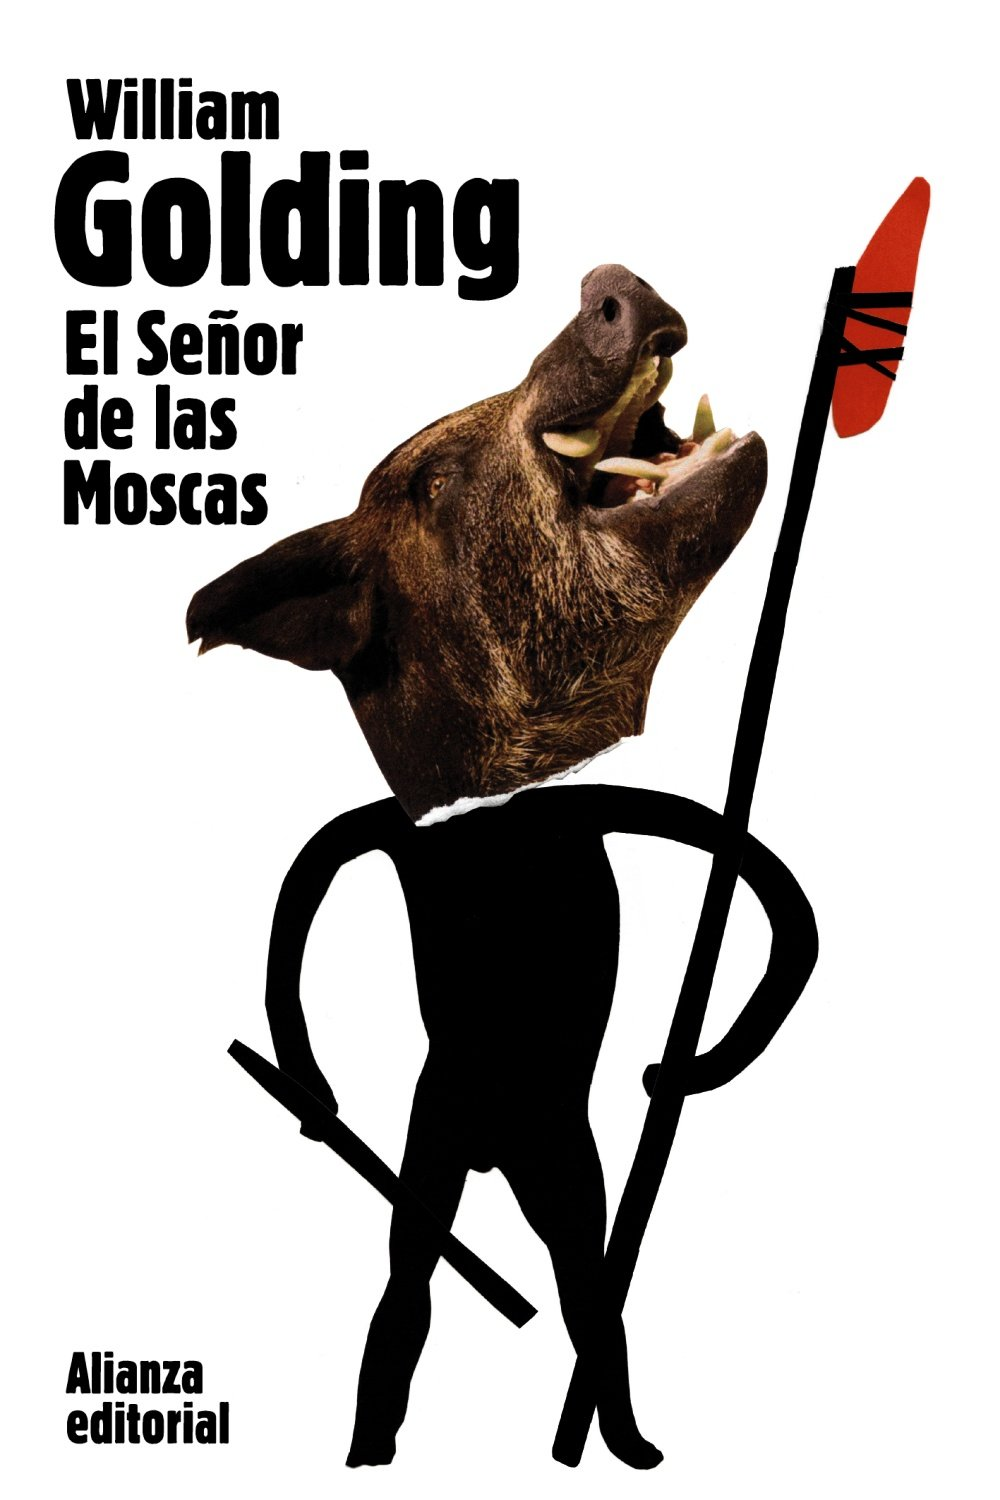 Amazon.com: El senor de las moscas / Lord of the Flies (Spanish Edition)  (9788420674179): William Golding: Books